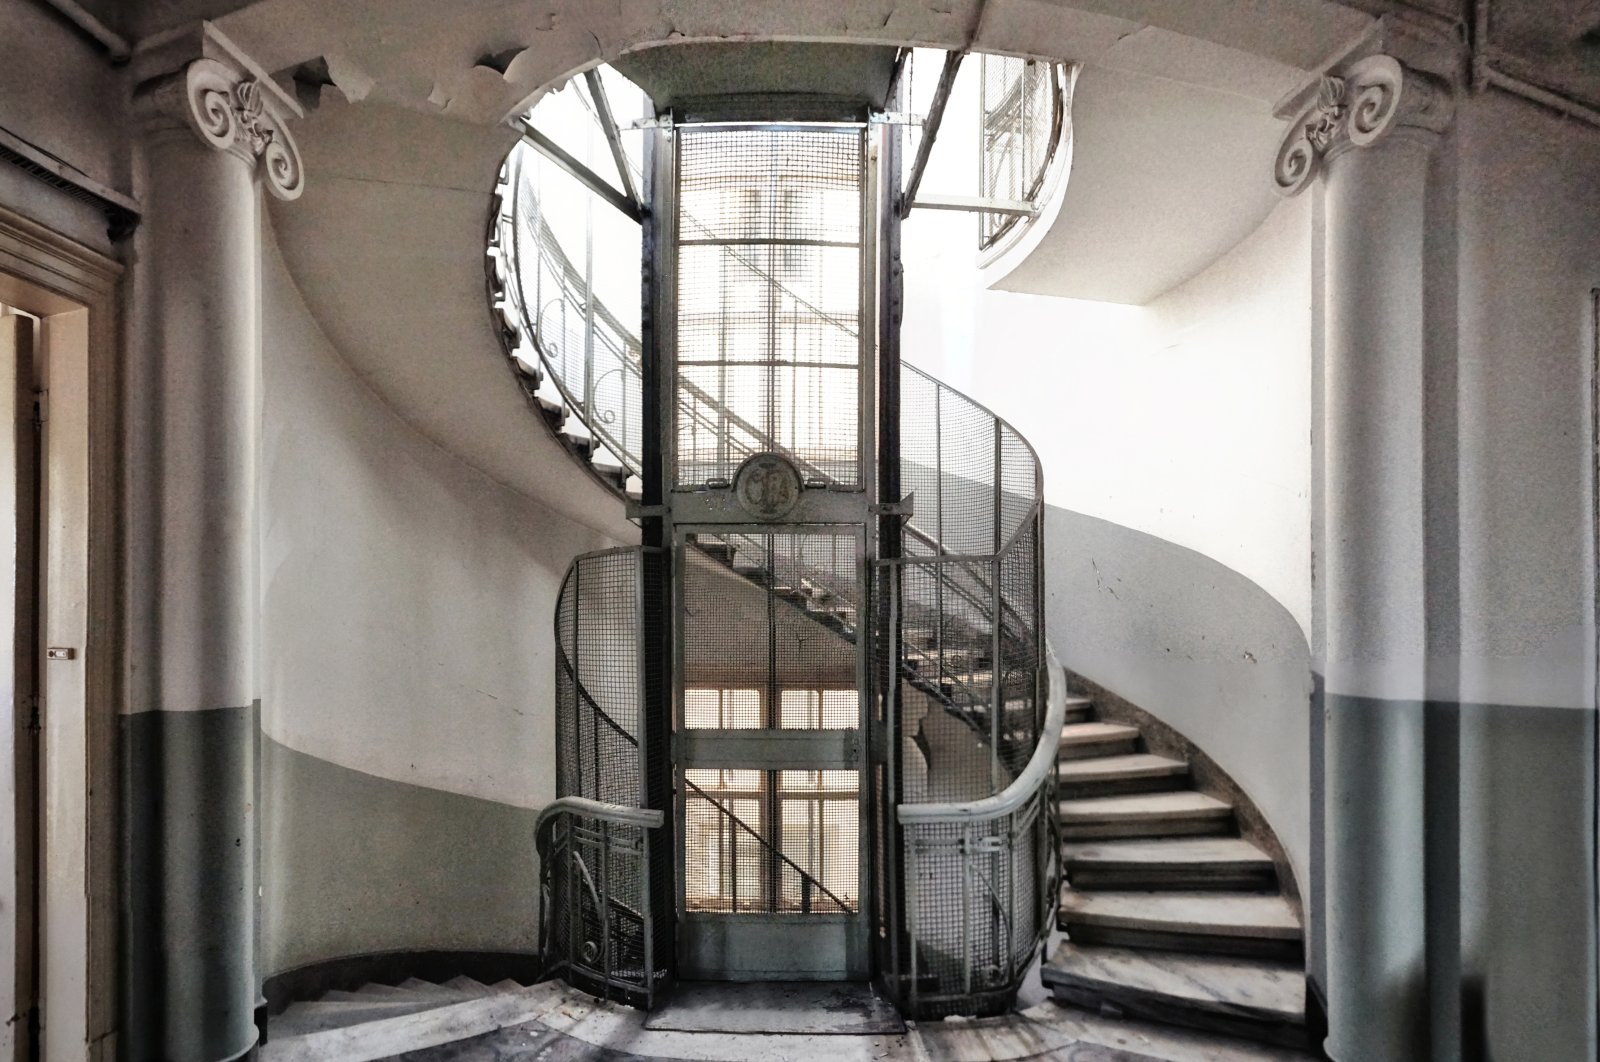 The decoration and ornaments on the main staircase in the building will be preserved.